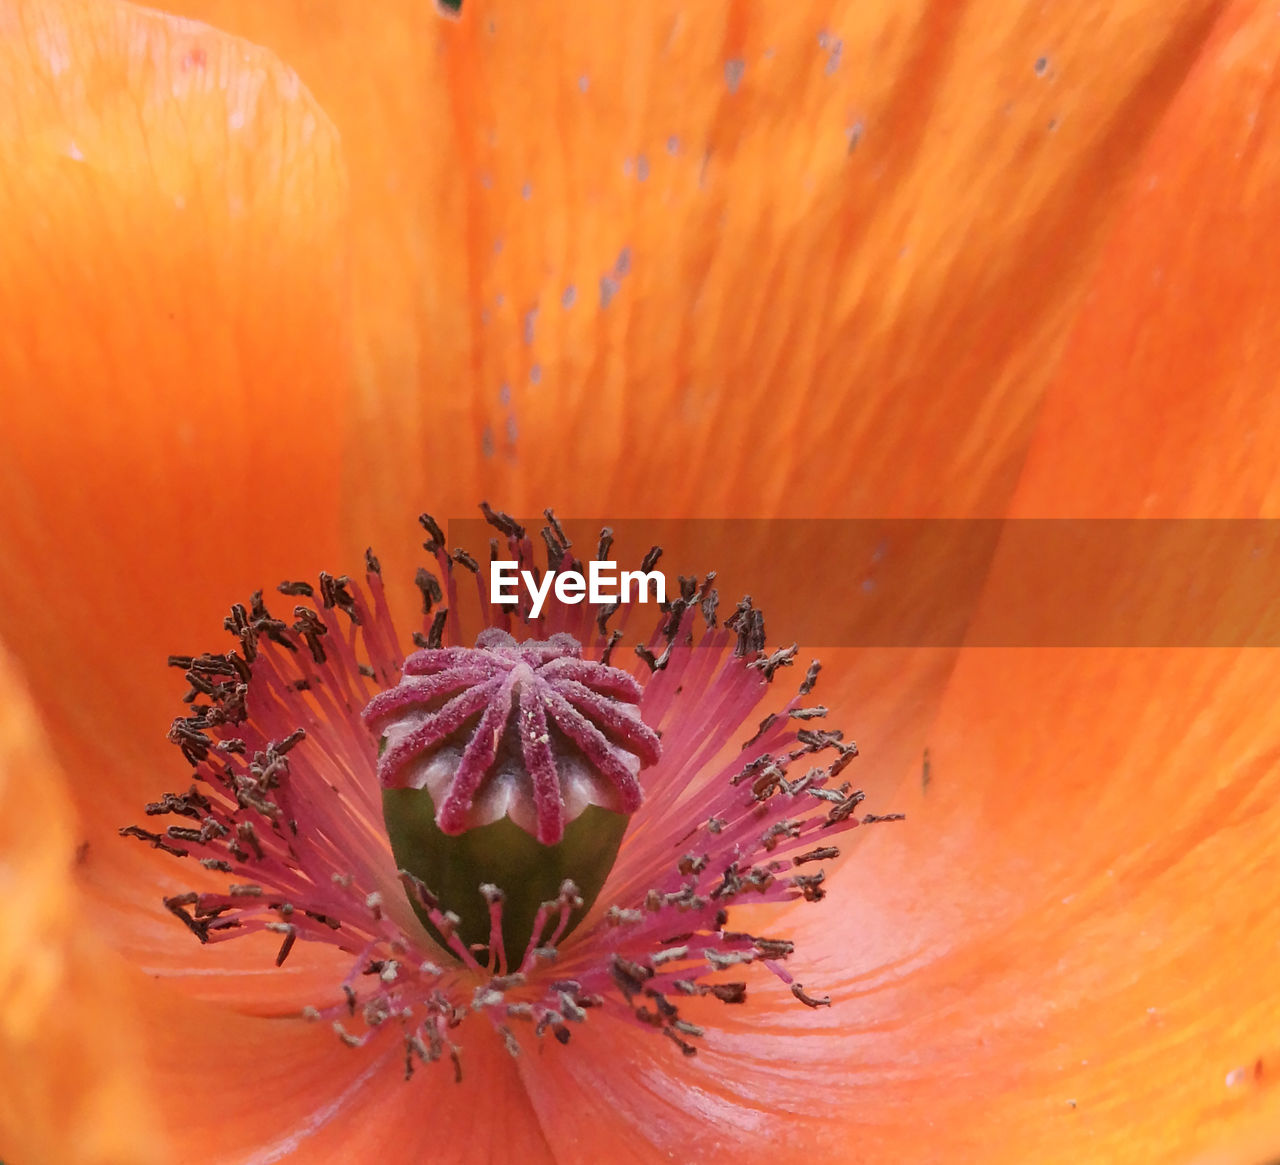 flower, flowering plant, petal, vulnerability, fragility, plant, freshness, flower head, beauty in nature, growth, inflorescence, pollen, close-up, orange color, extreme close-up, no people, stamen, nature, botany, soft focus